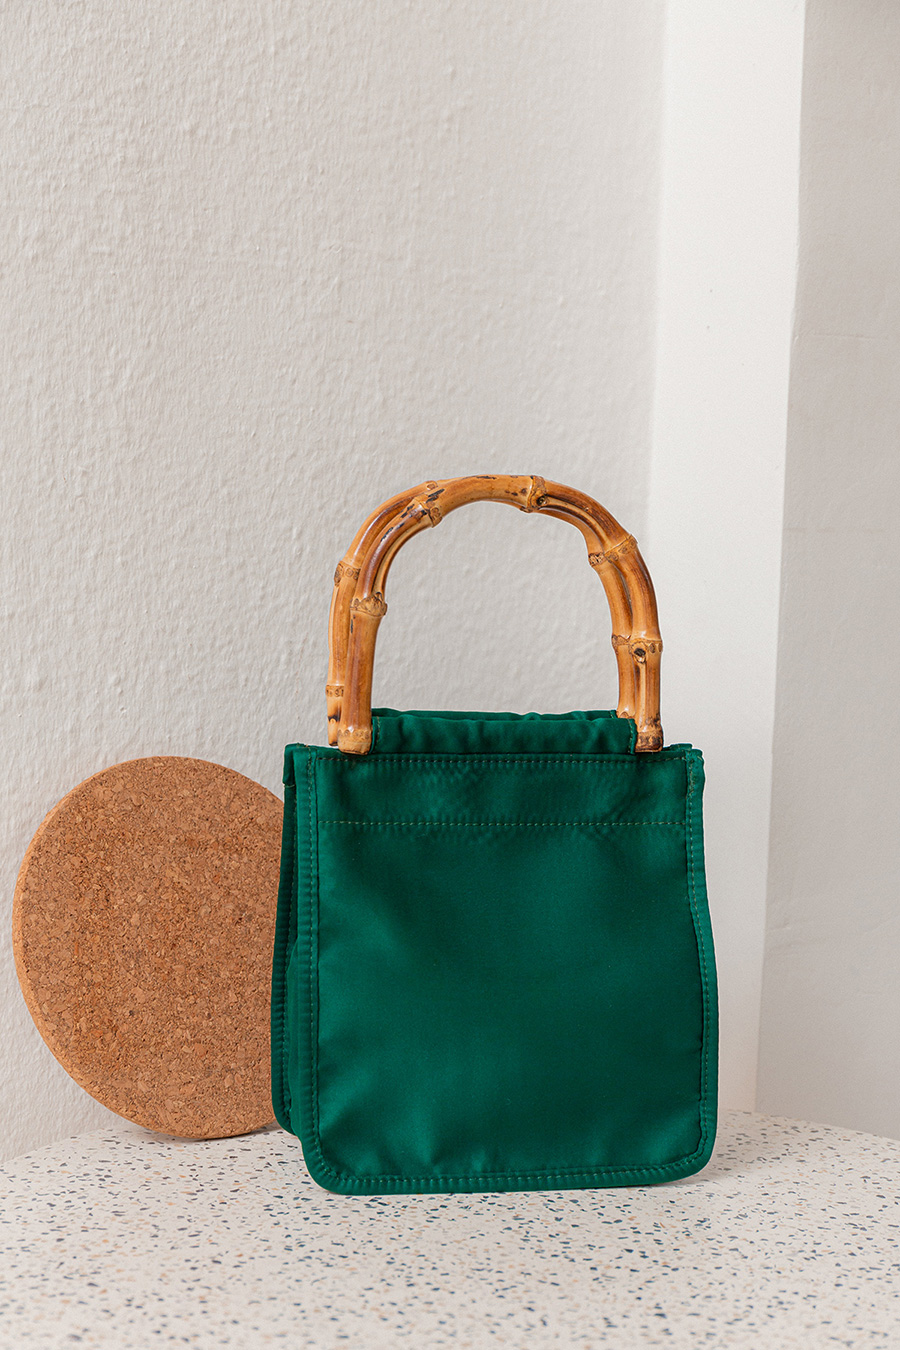 *SALE* MADISON BAG - EMERALD